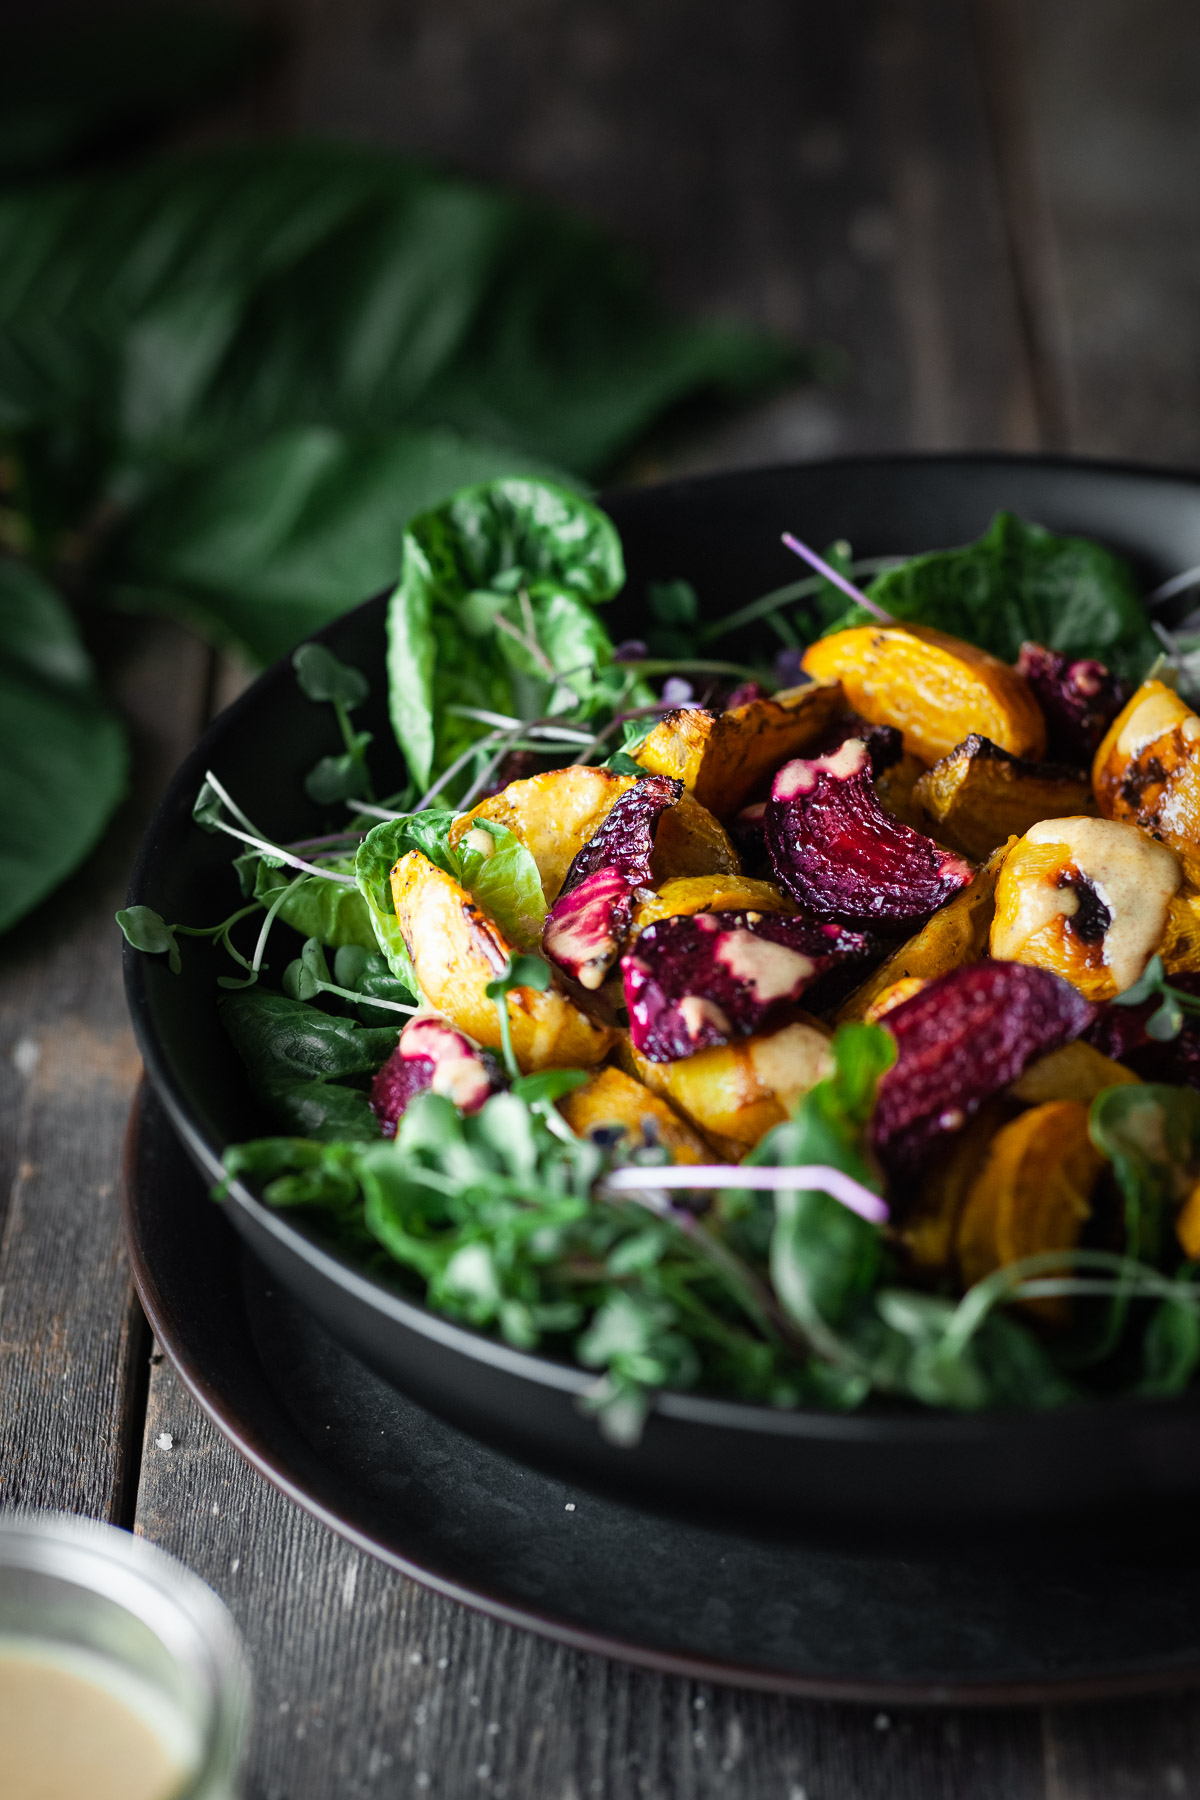 Angled view of roasted beet salad on a wood table.